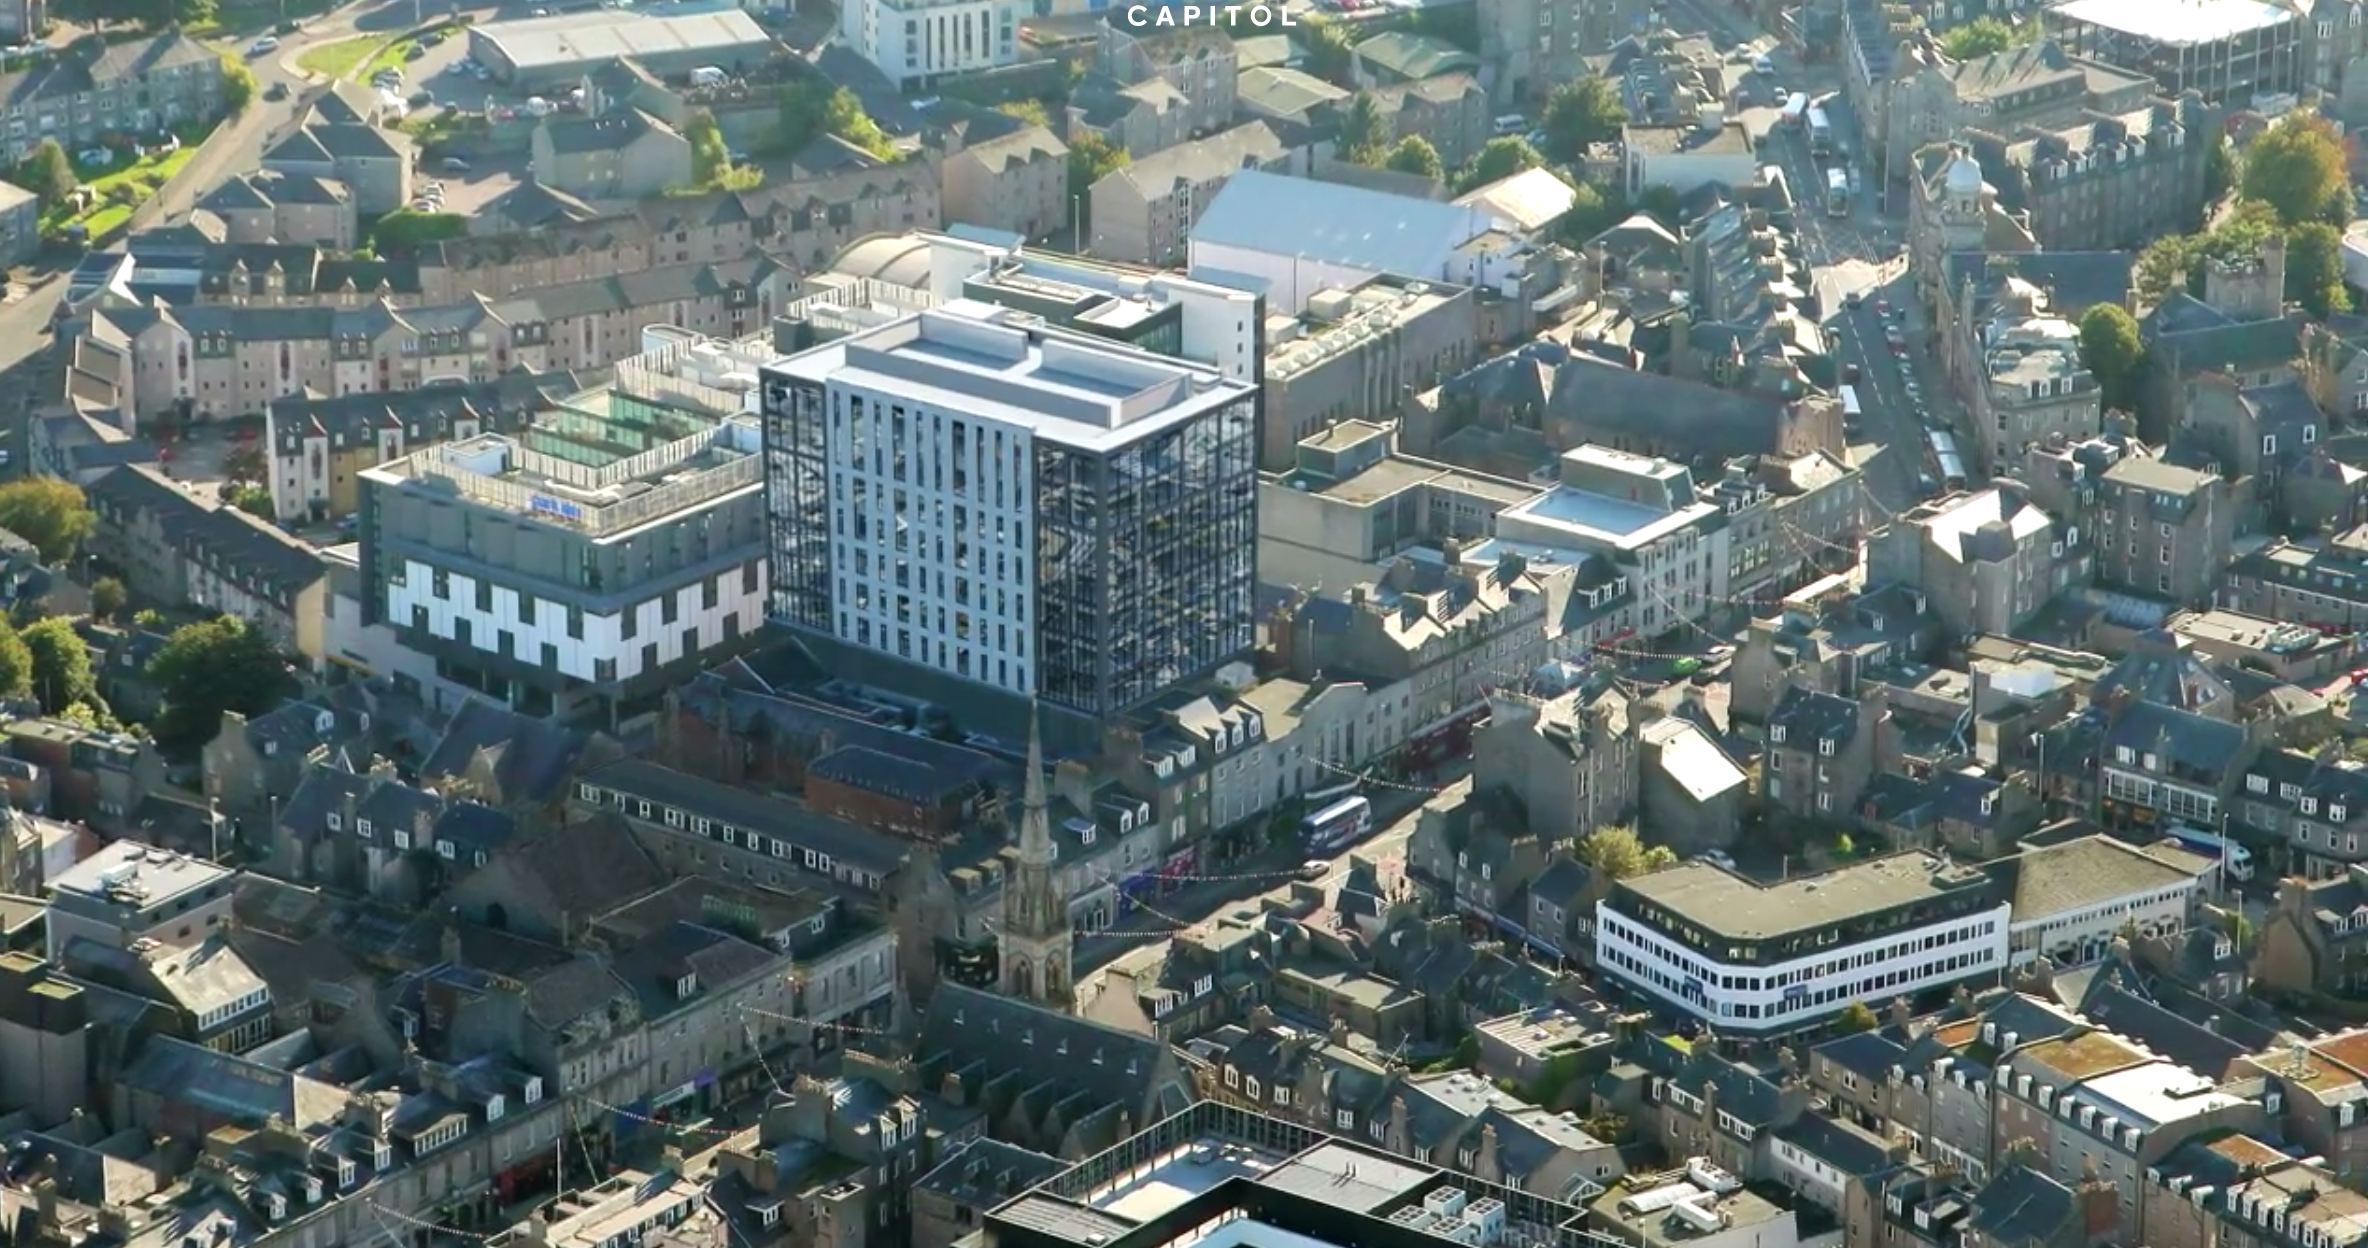 An artist impression of how the building will look when finished set against the surrounding area